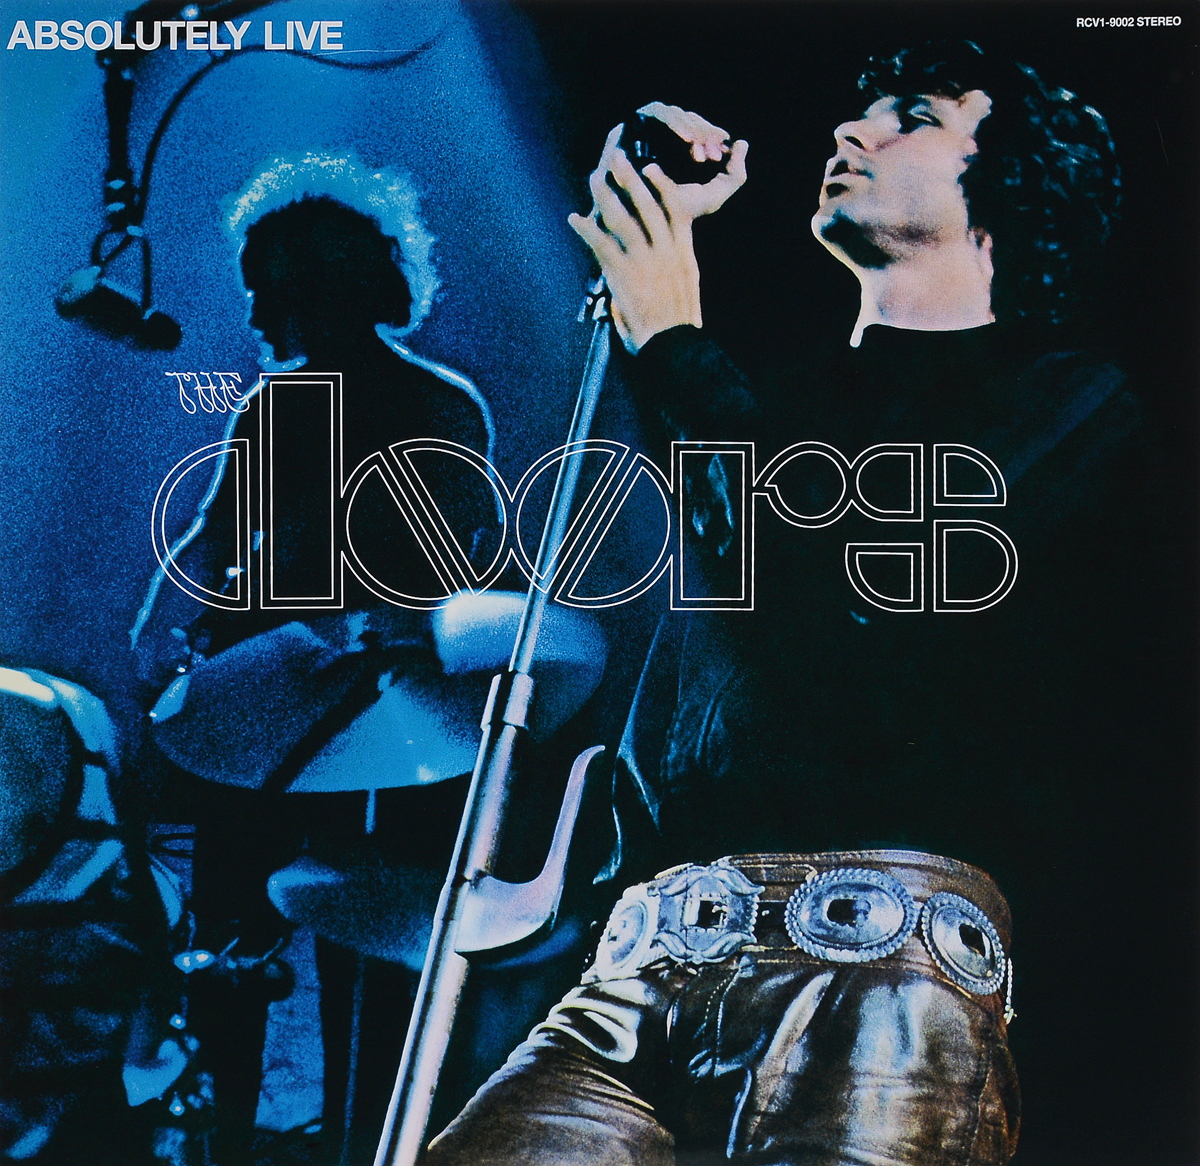 The Doors The Doors. Absolutely Live (2 LP) the doors the doors absolutely live 2 lp